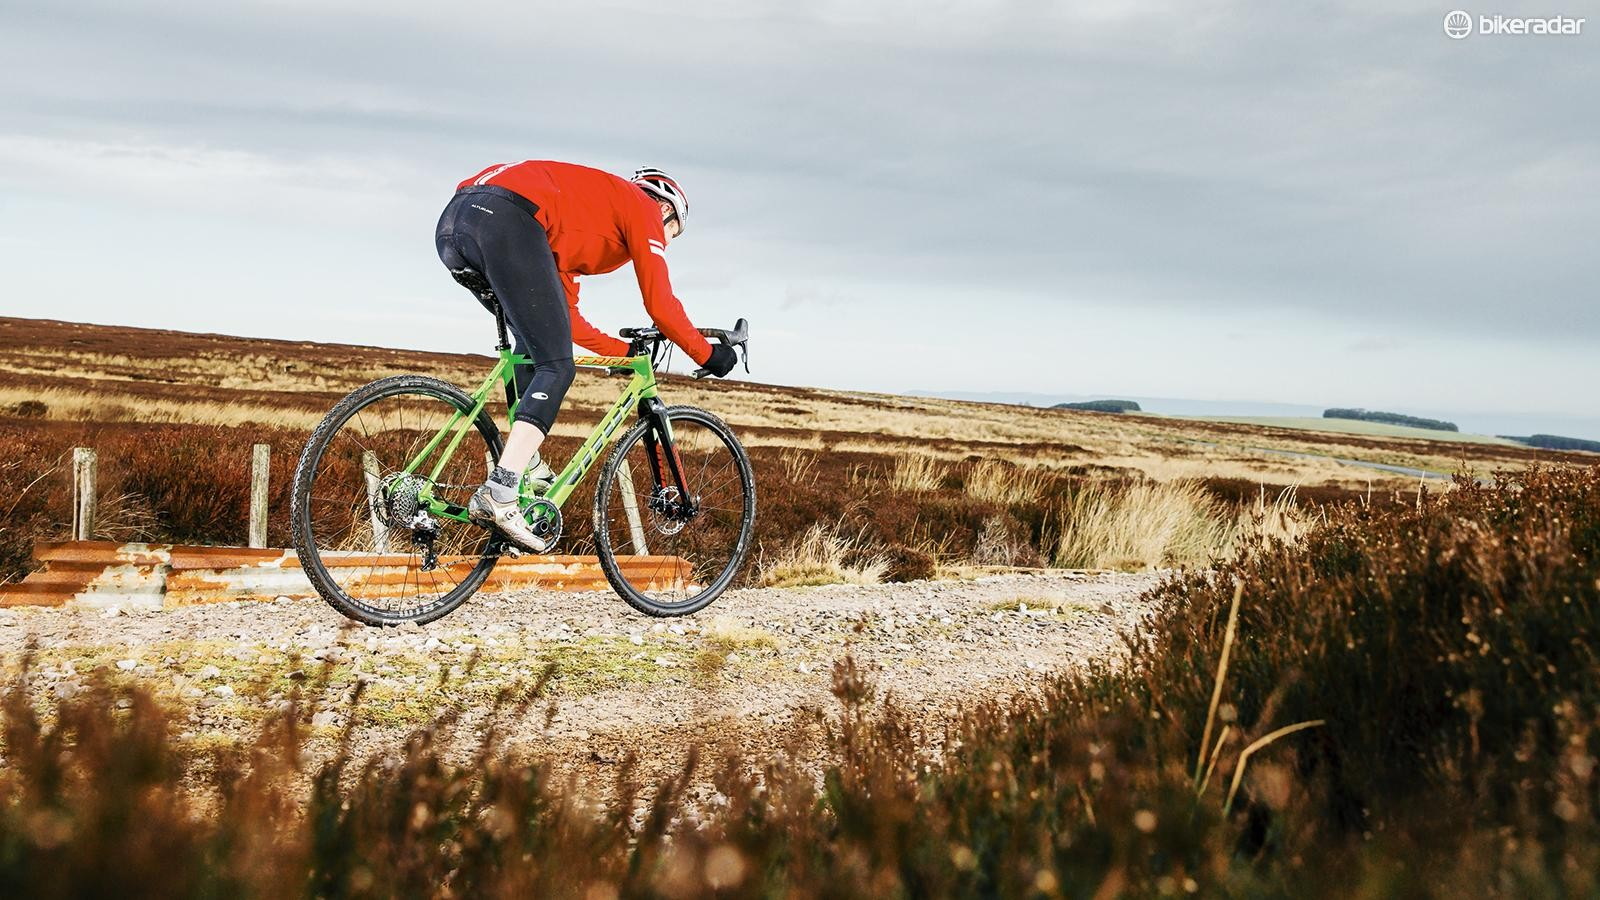 The Energie's bang-up-to-date carbon frame and full-carbon fork represent impressive value